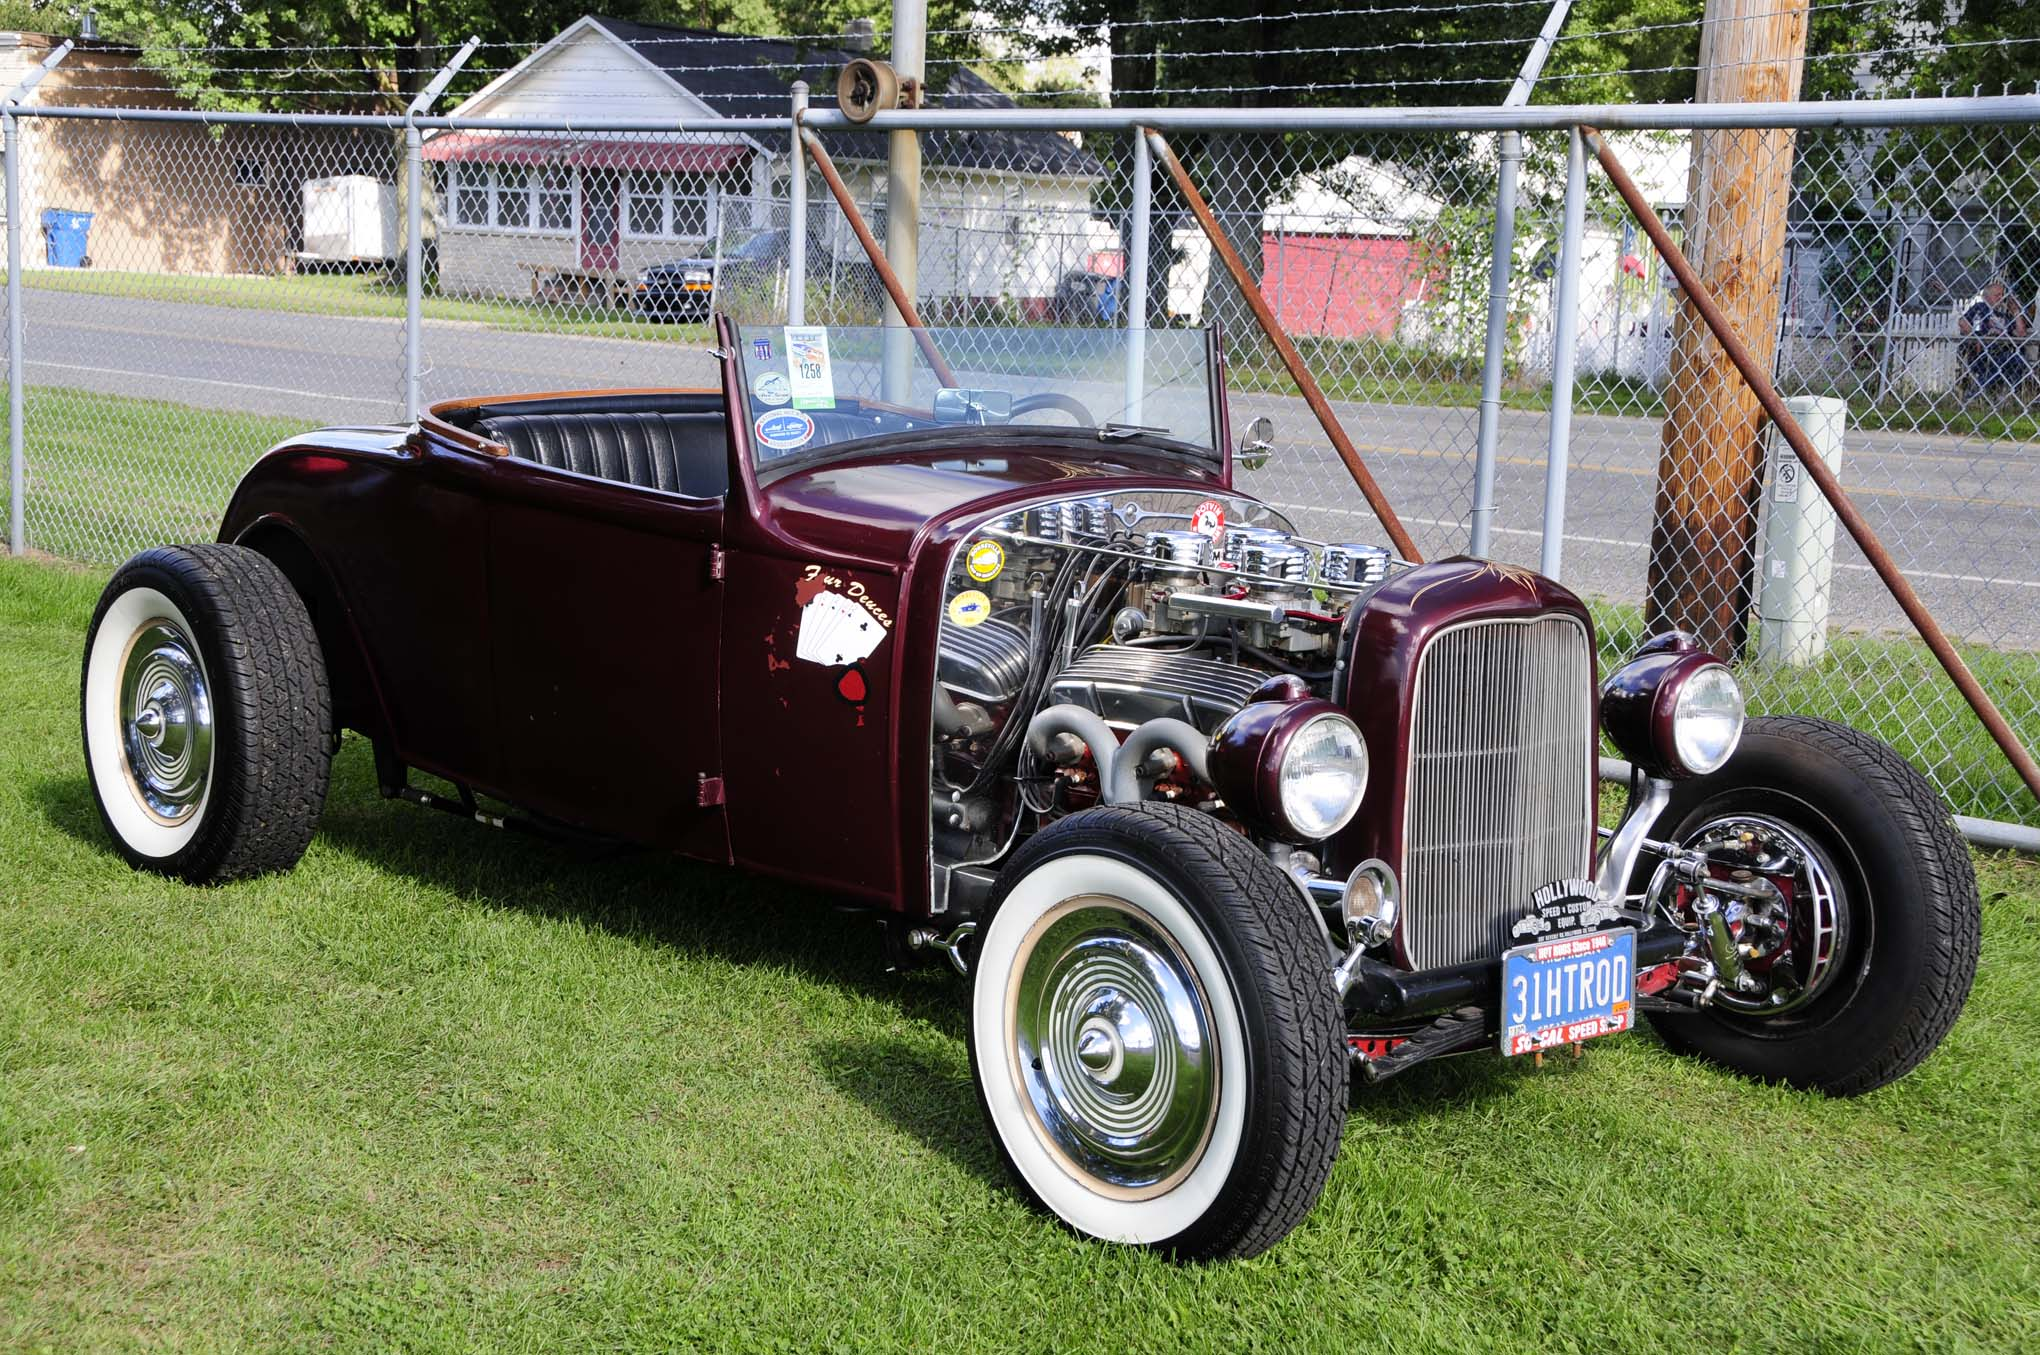 Tom Calvey's 1931 Ford roadster was packed with all the right bits, including a four-deuce-fed small-block, channeled body, chopped windshield, and deep burgundy pearl body.